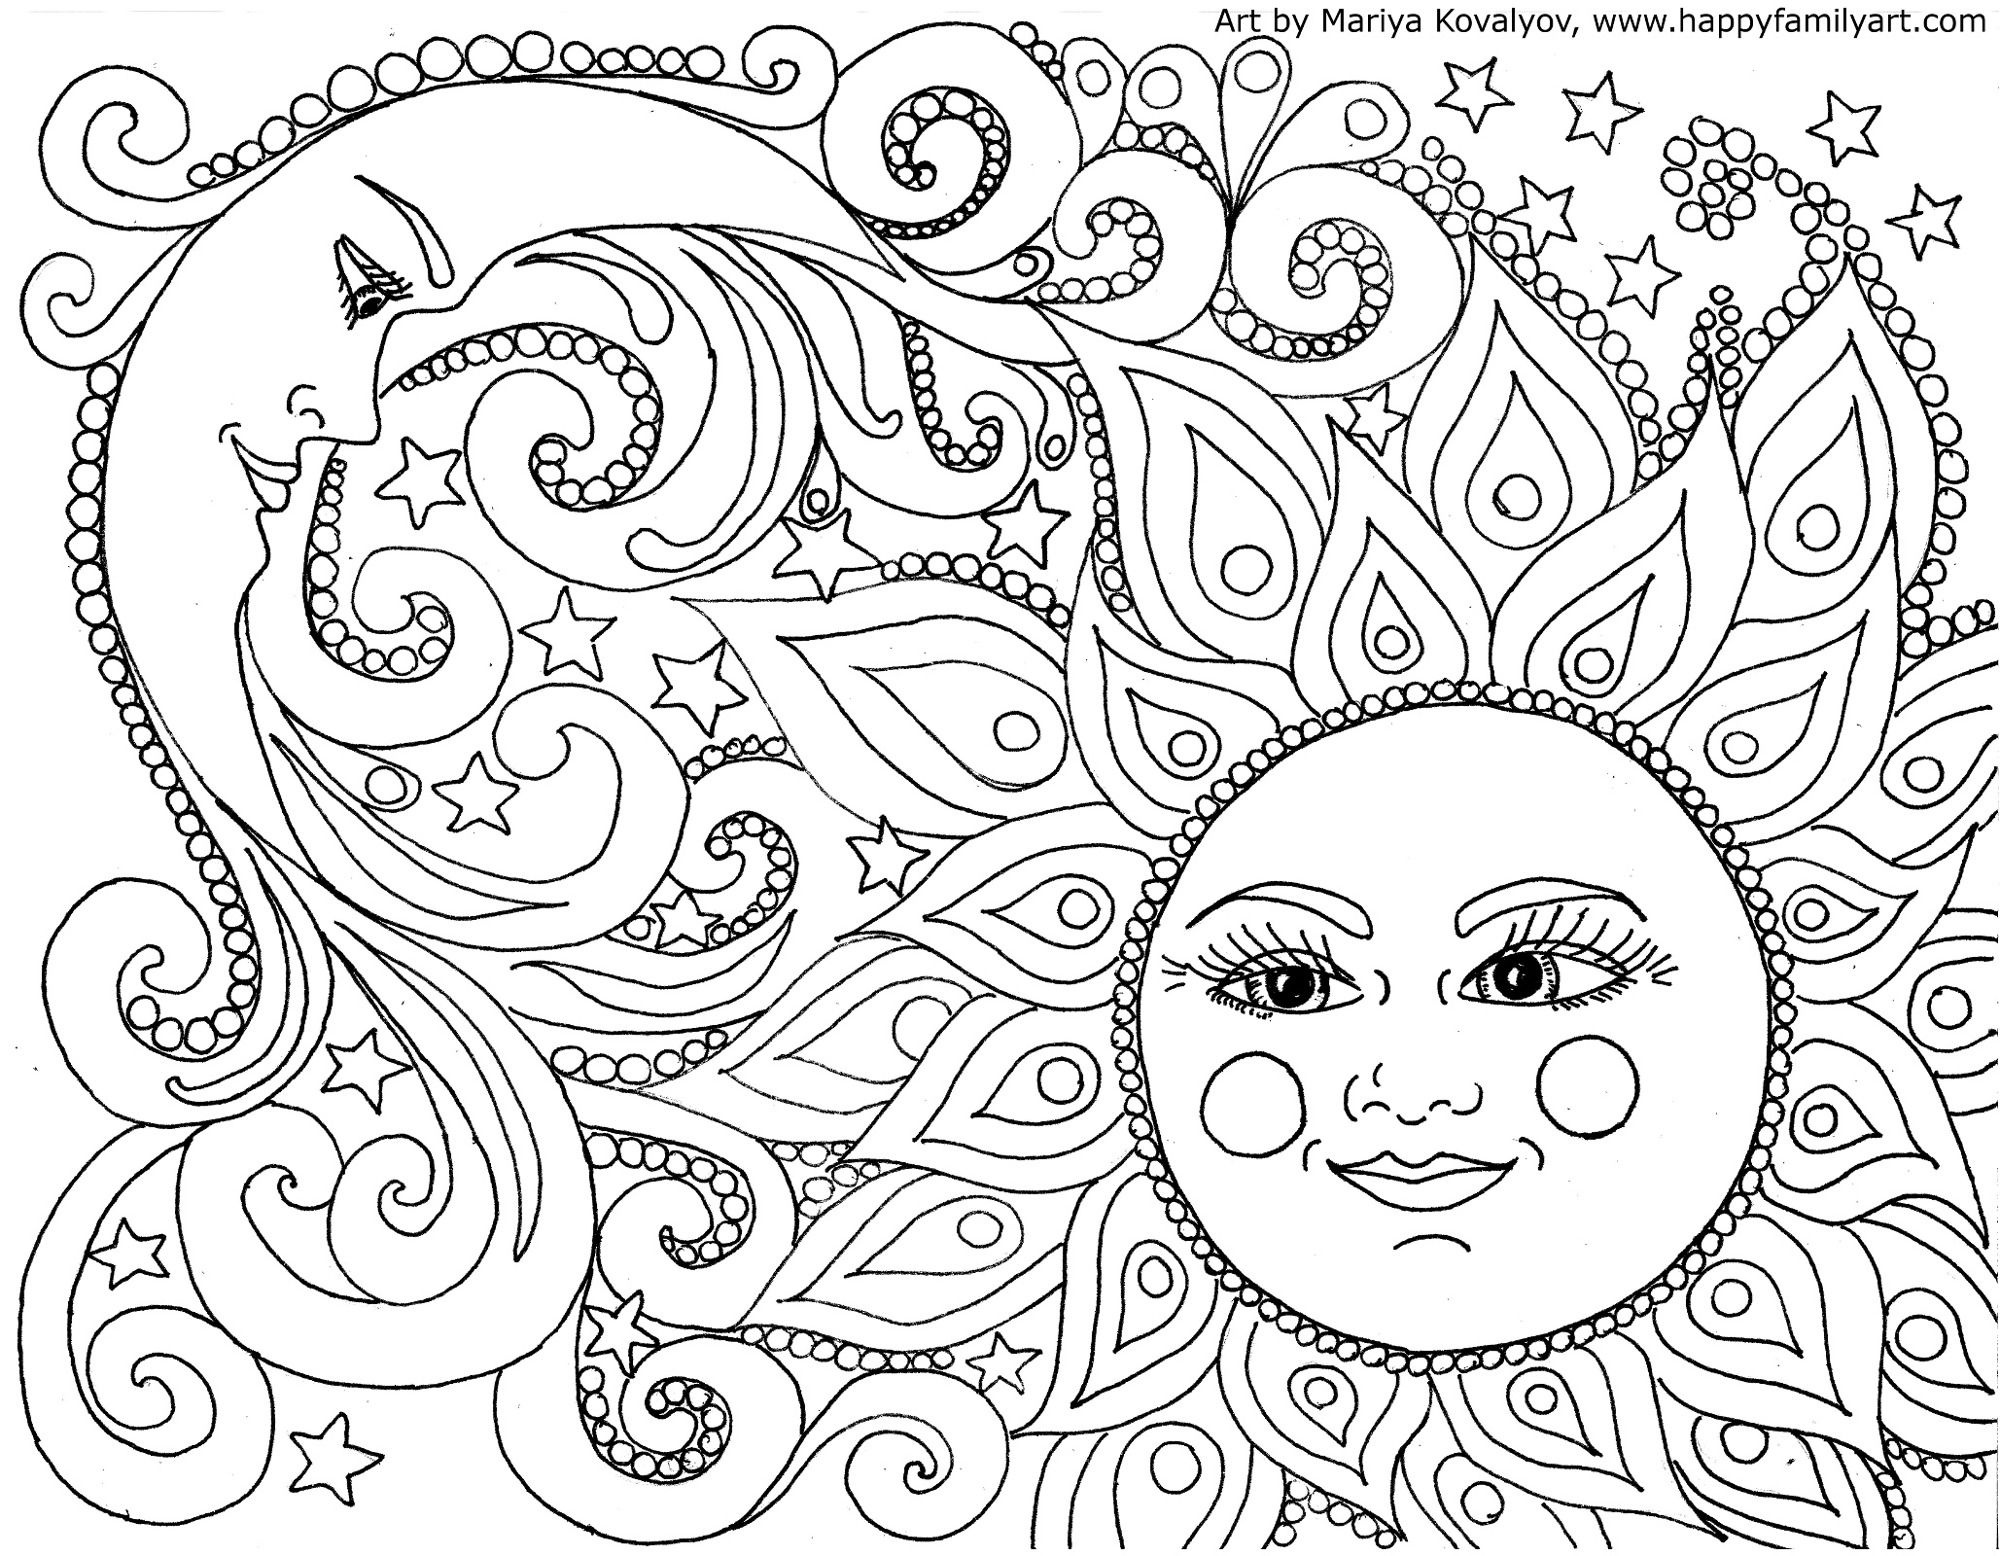 2000x1556 Best Of Ballet Printable Coloring Pages For Adults Ballet Girl